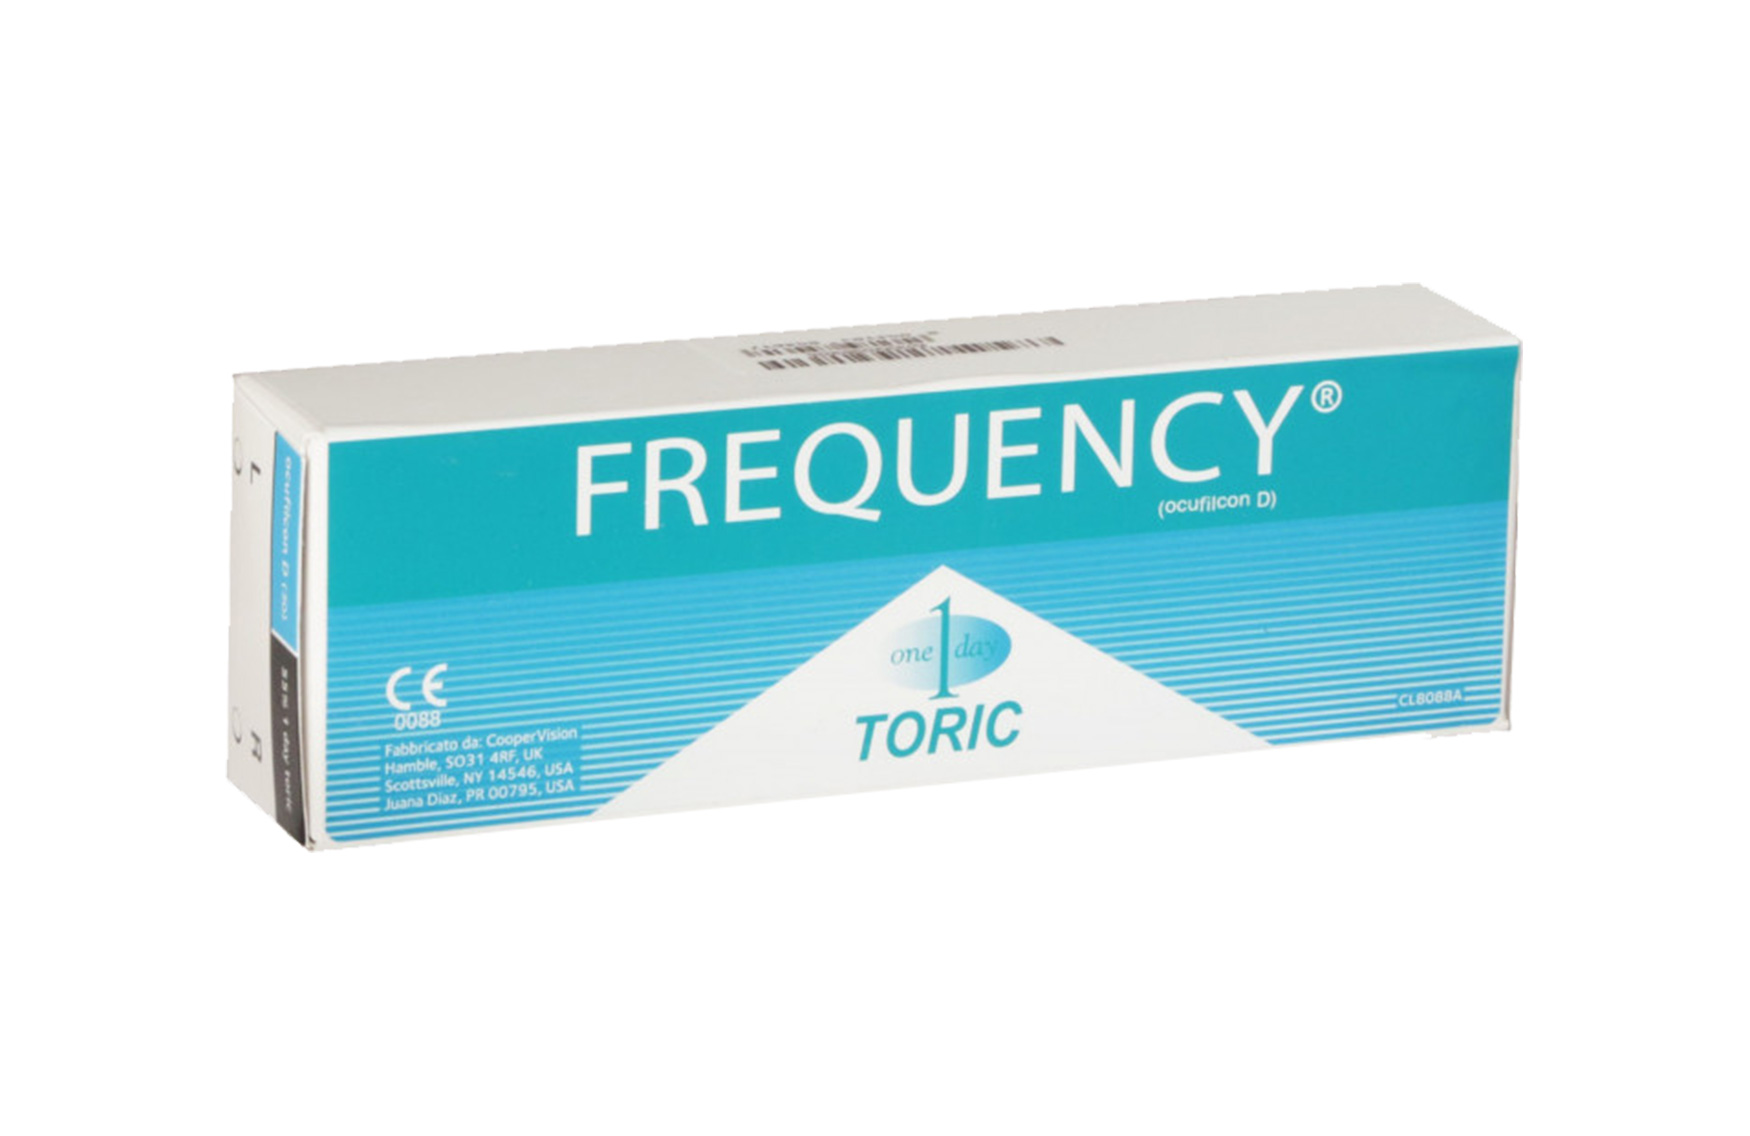 Frequency 1 Day Toric (30 Lenti)